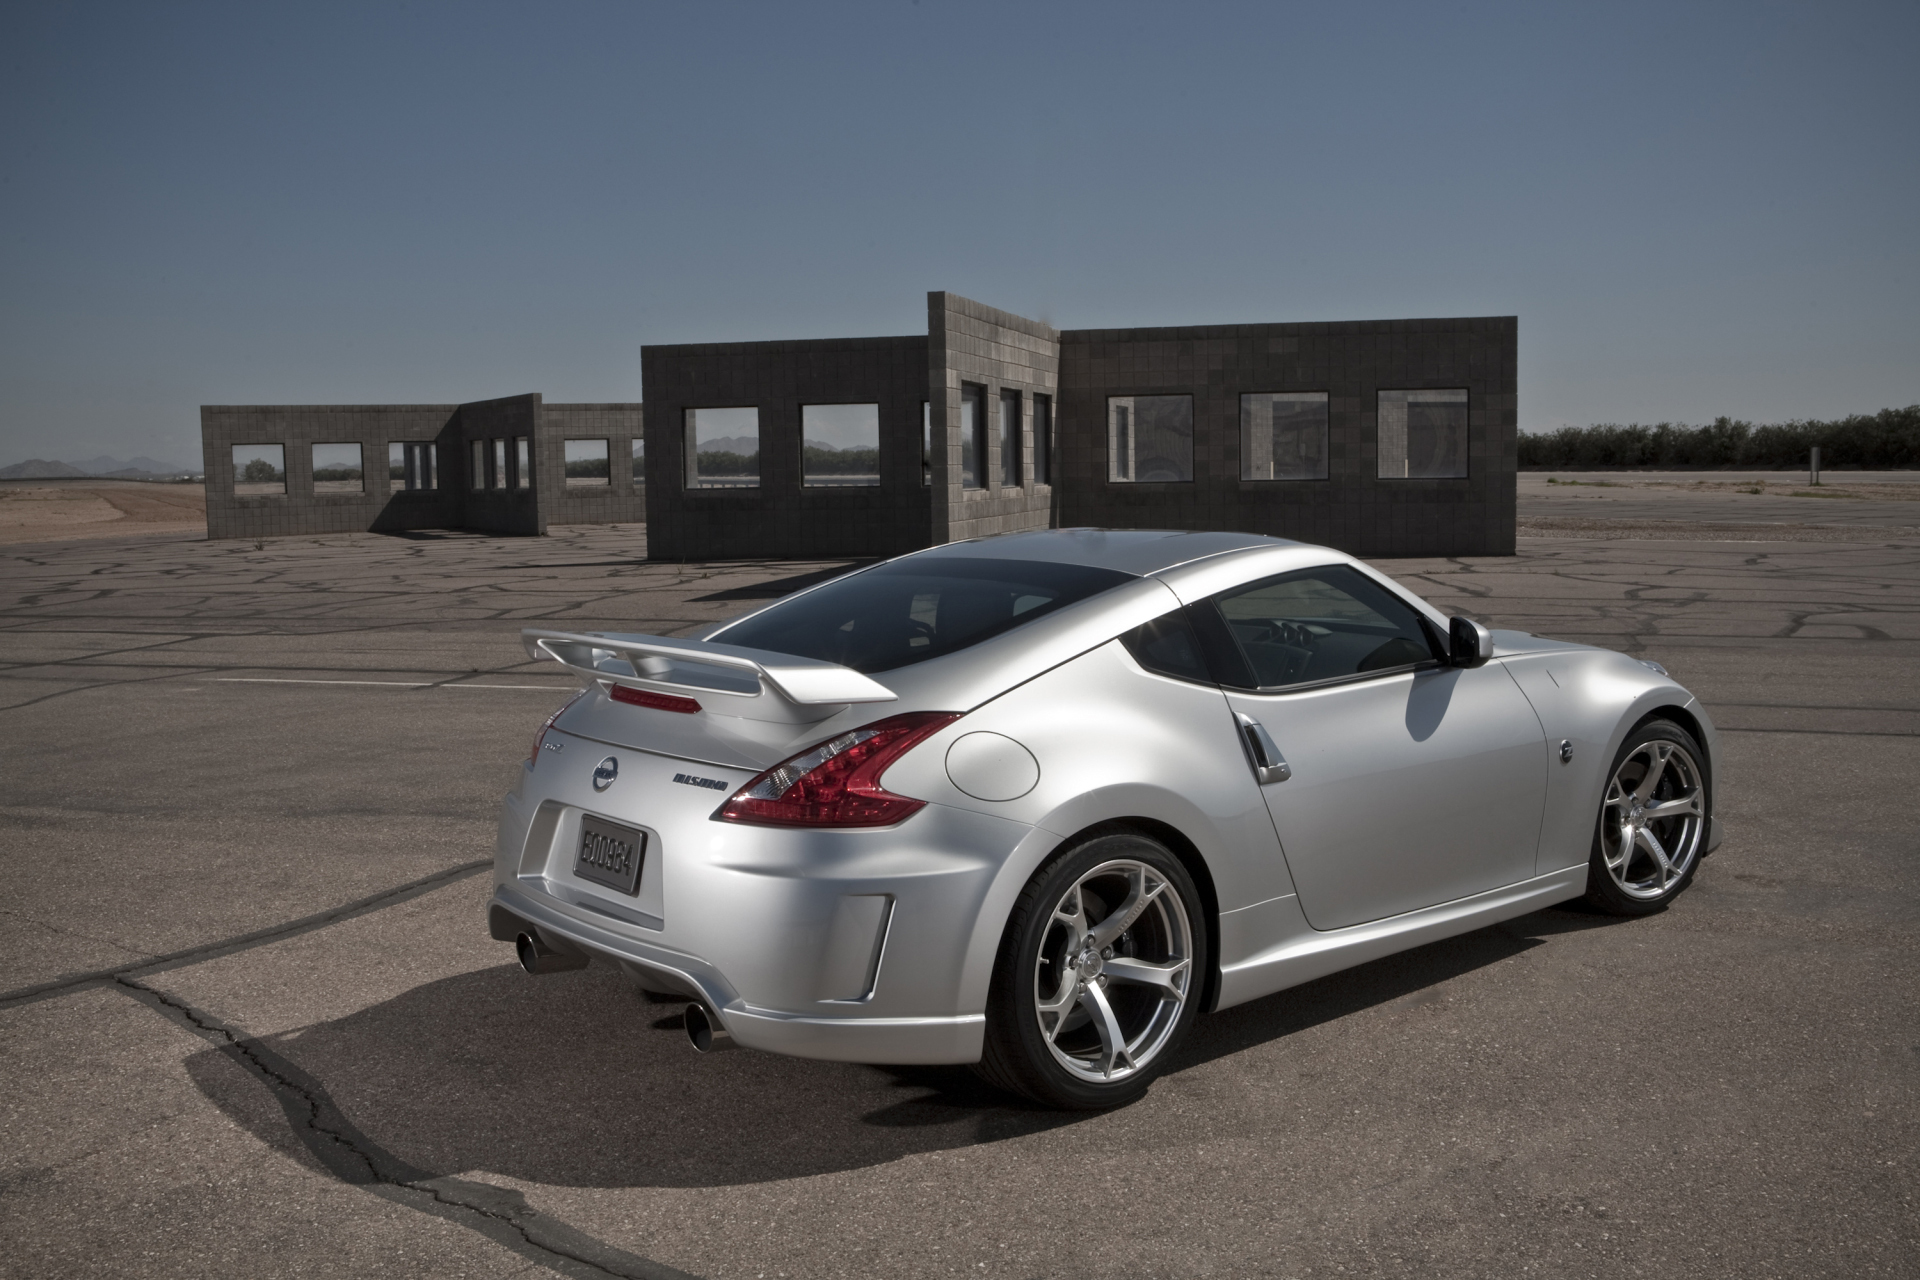 cars back view nissan HD Wallpaper